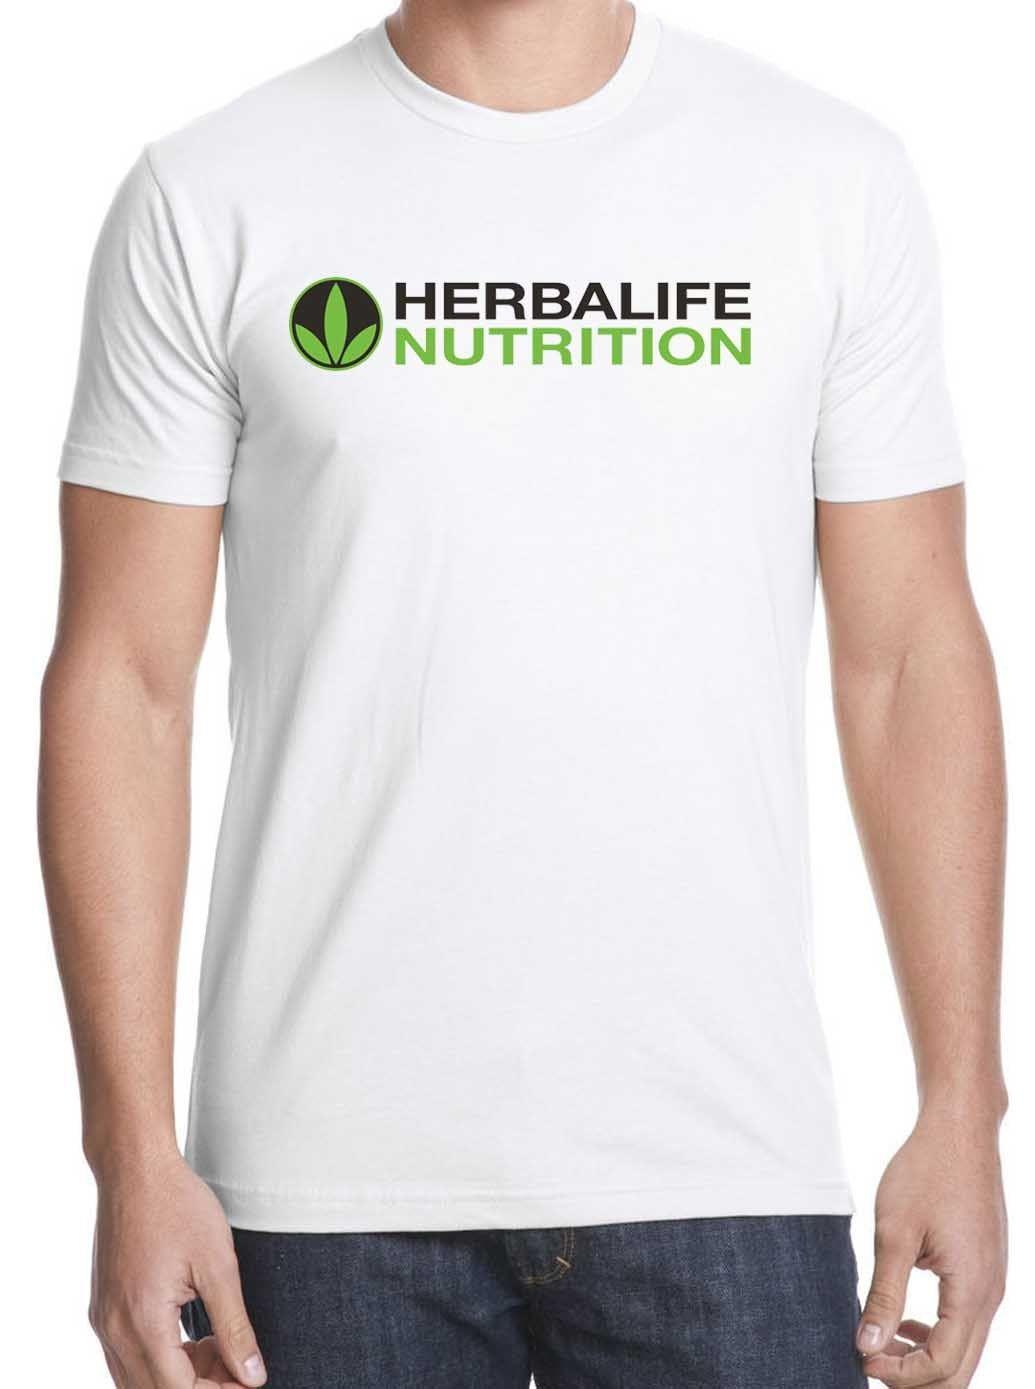 159d6494 Herbalife Nutrition Logo Cotton Shirt S 2XL Best Sites For T Shirts Tee  Shirt Deals From Honhui, $23.55| DHgate.Com